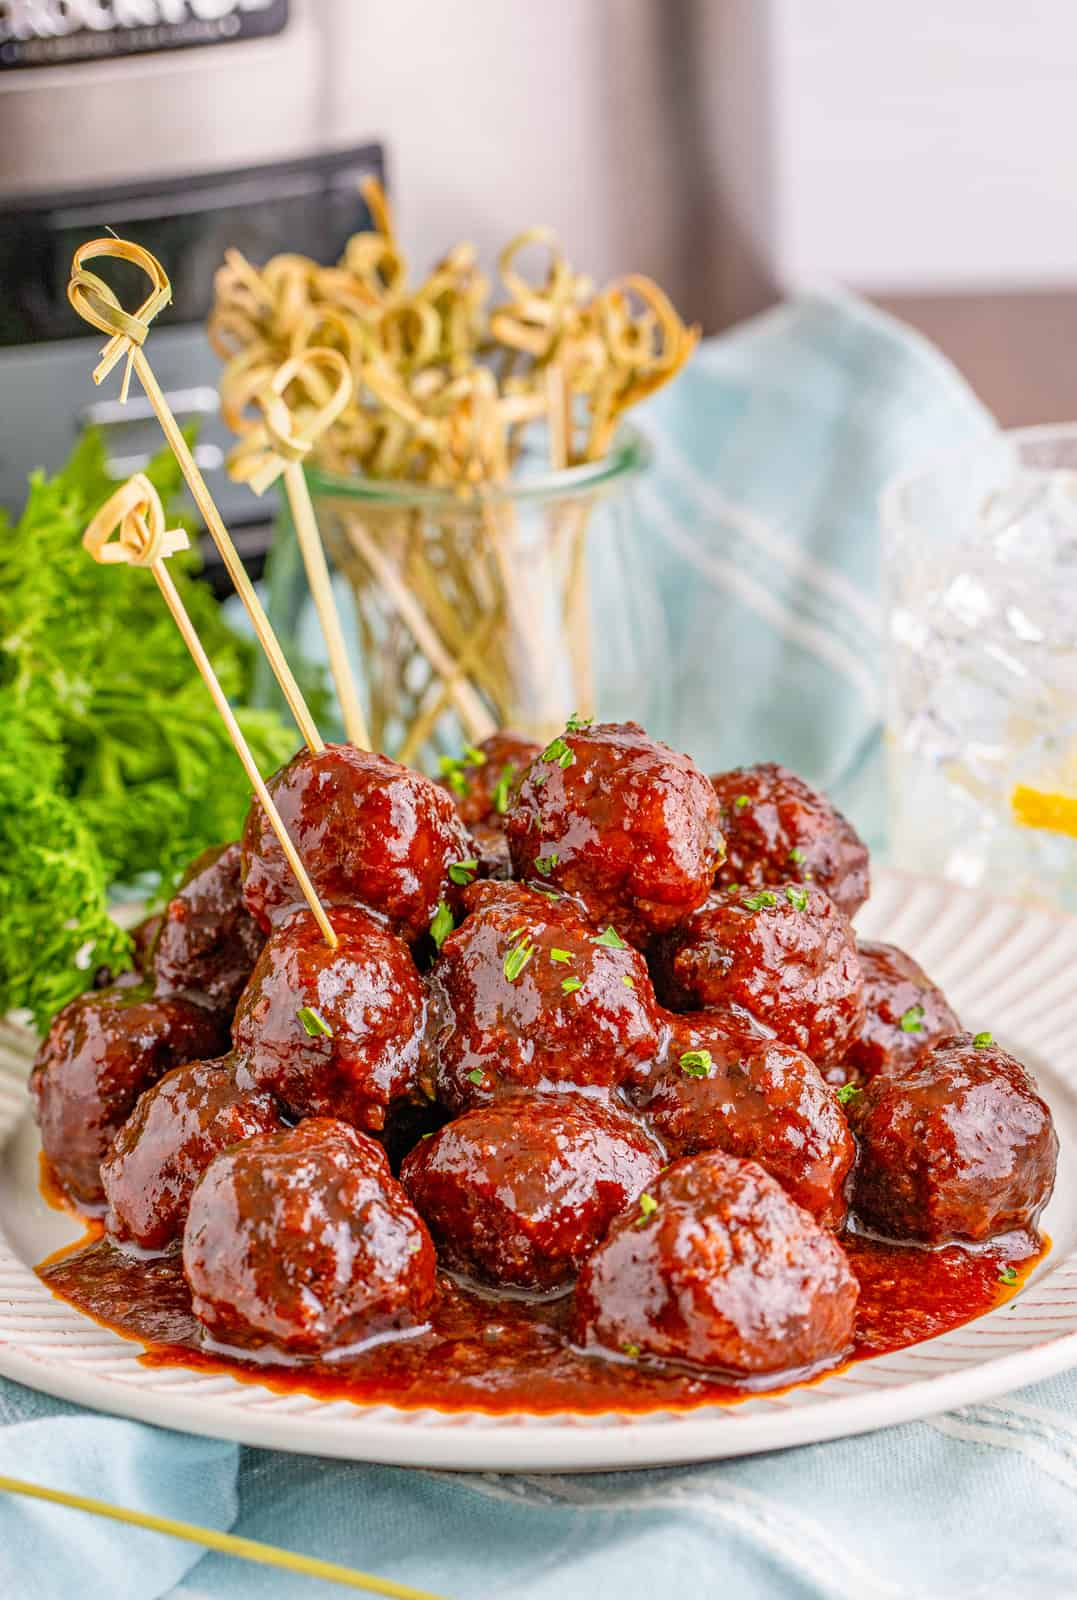 Grape Jelly Meatballs on plate showing sauce and parsley garnish.